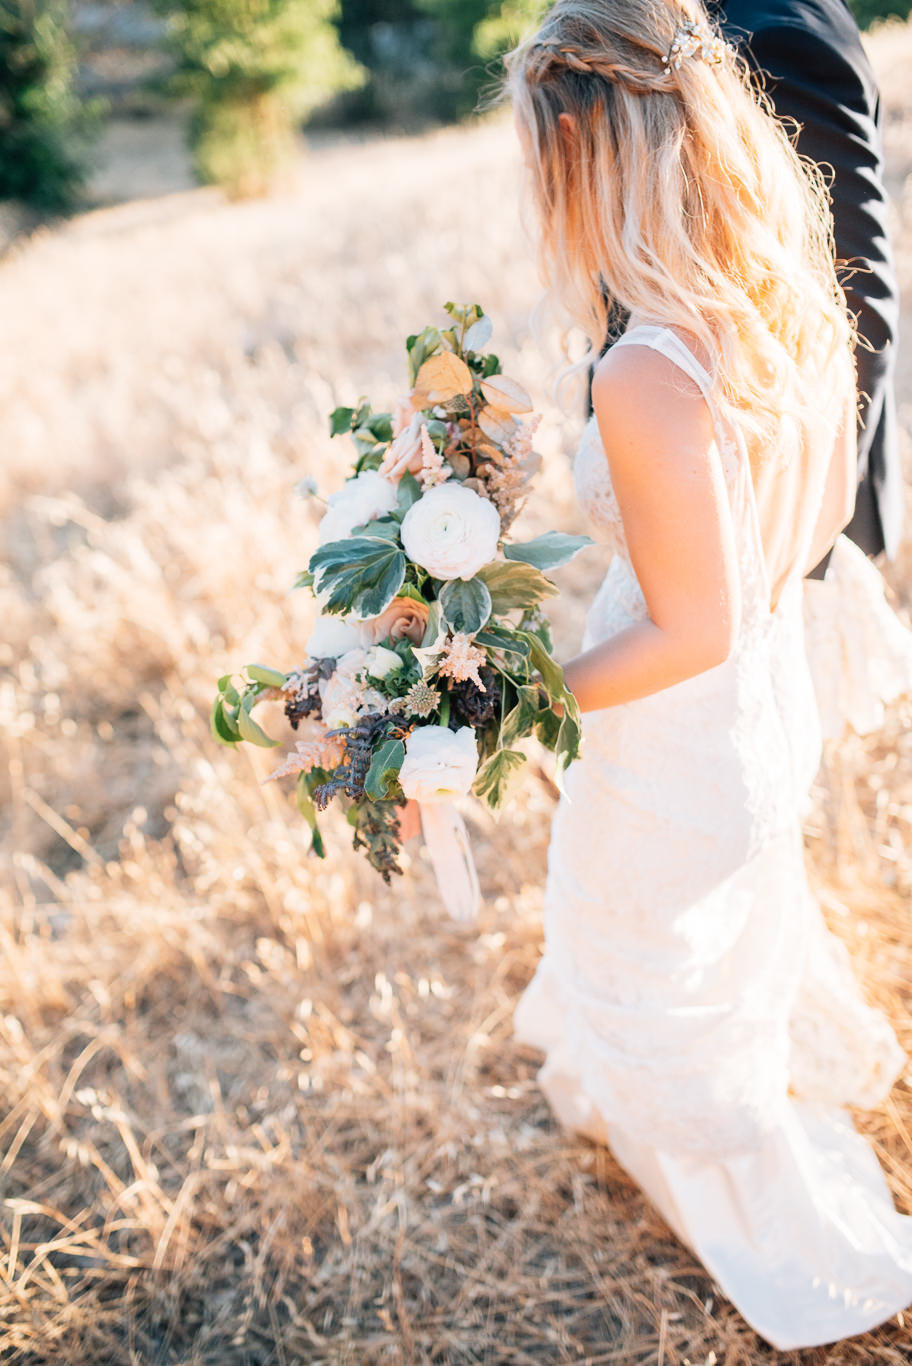 San Luis Obispo wedding photo by Amber McGaughey035